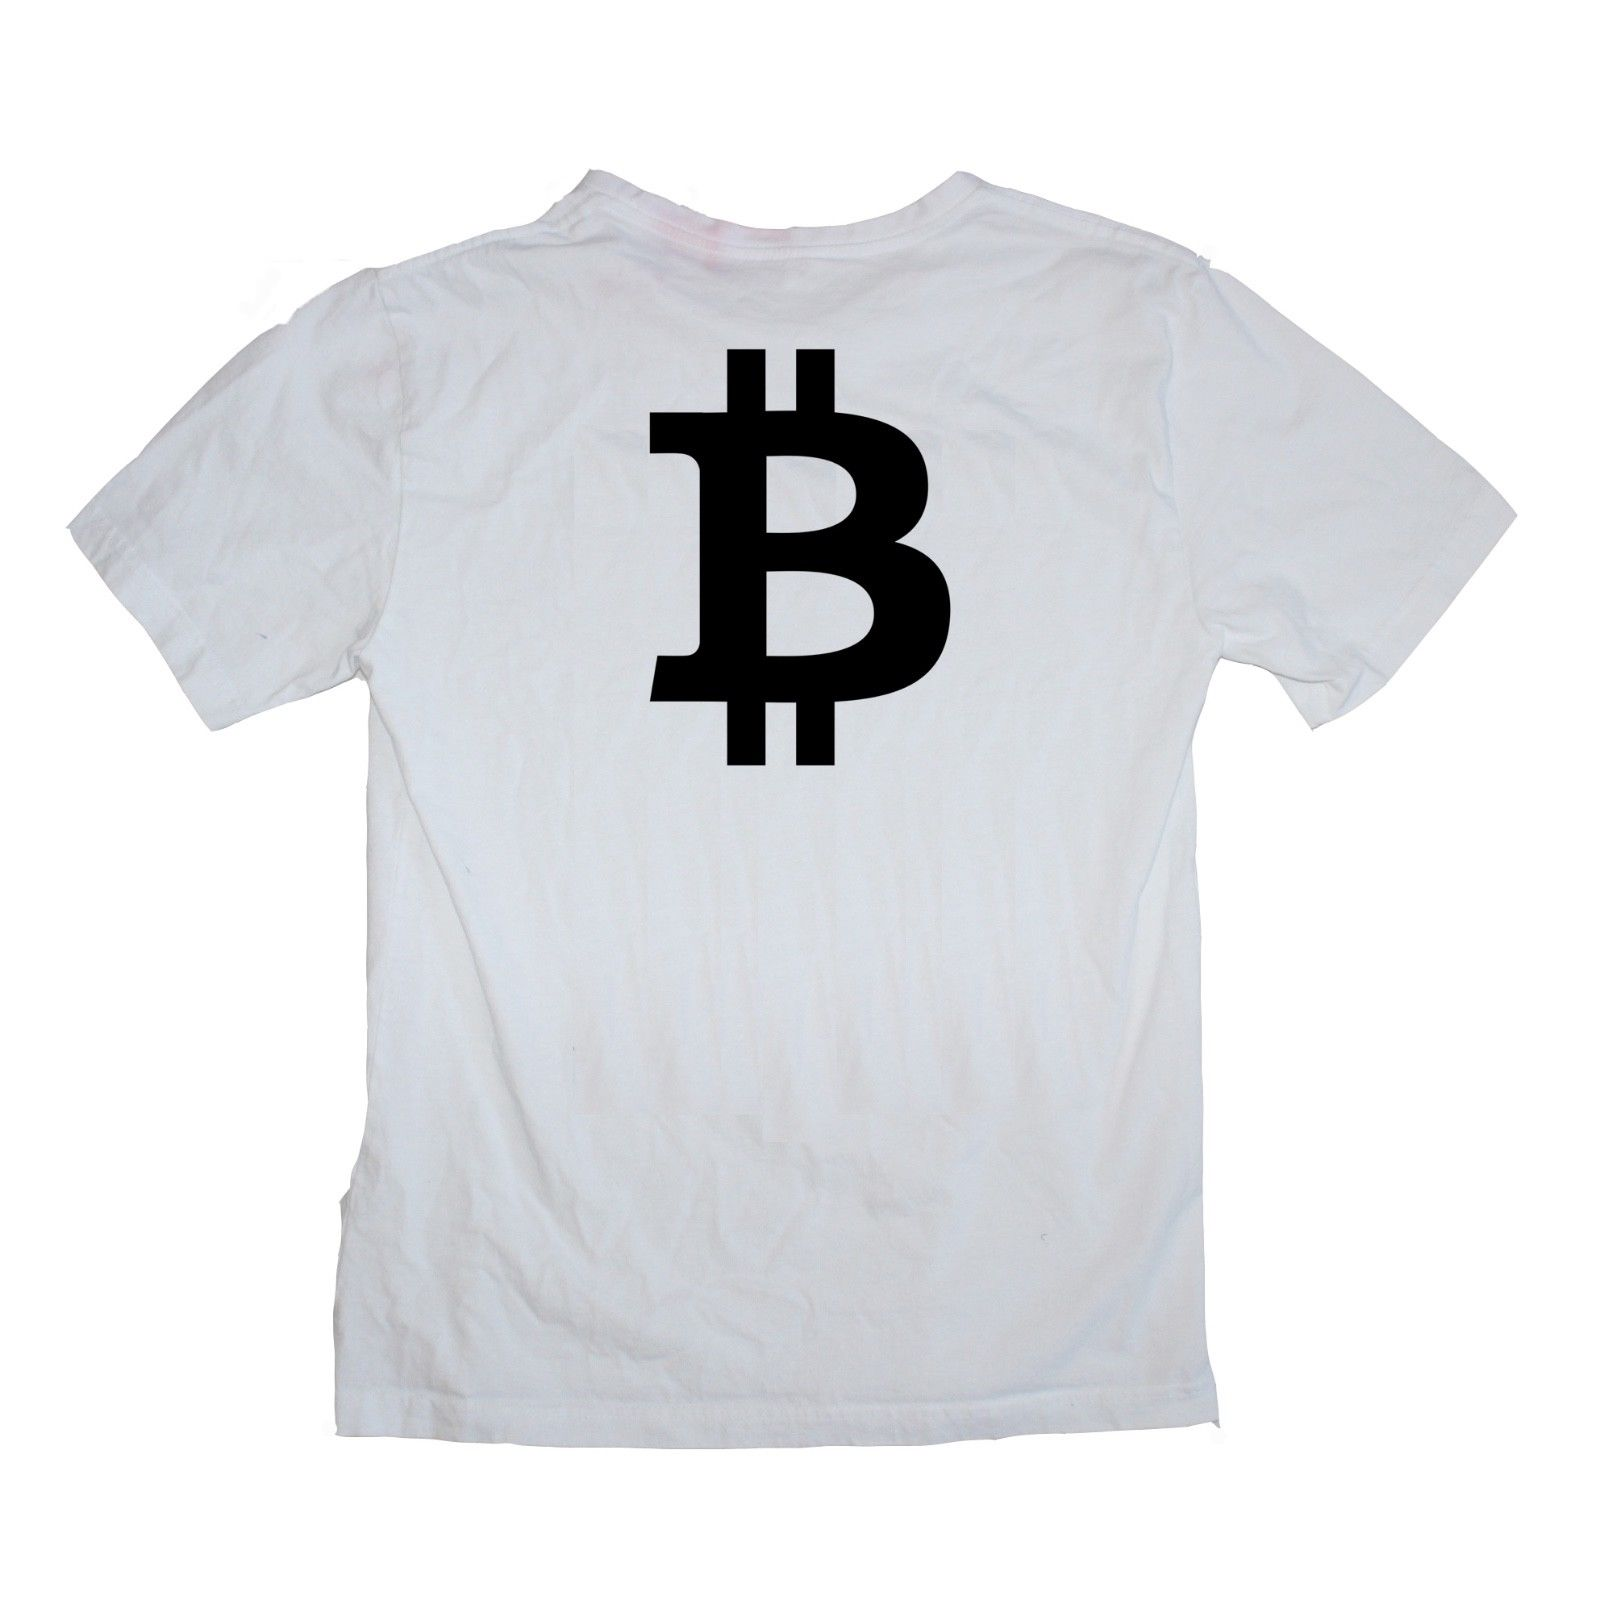 US $14 24 5% OFF Hot Sell 2018 Fashion Bitcoin Money Crypto Currency  Digital Coin Shirt Kids Many Colours Print T Shirt Men-in T-Shirts from  Men's